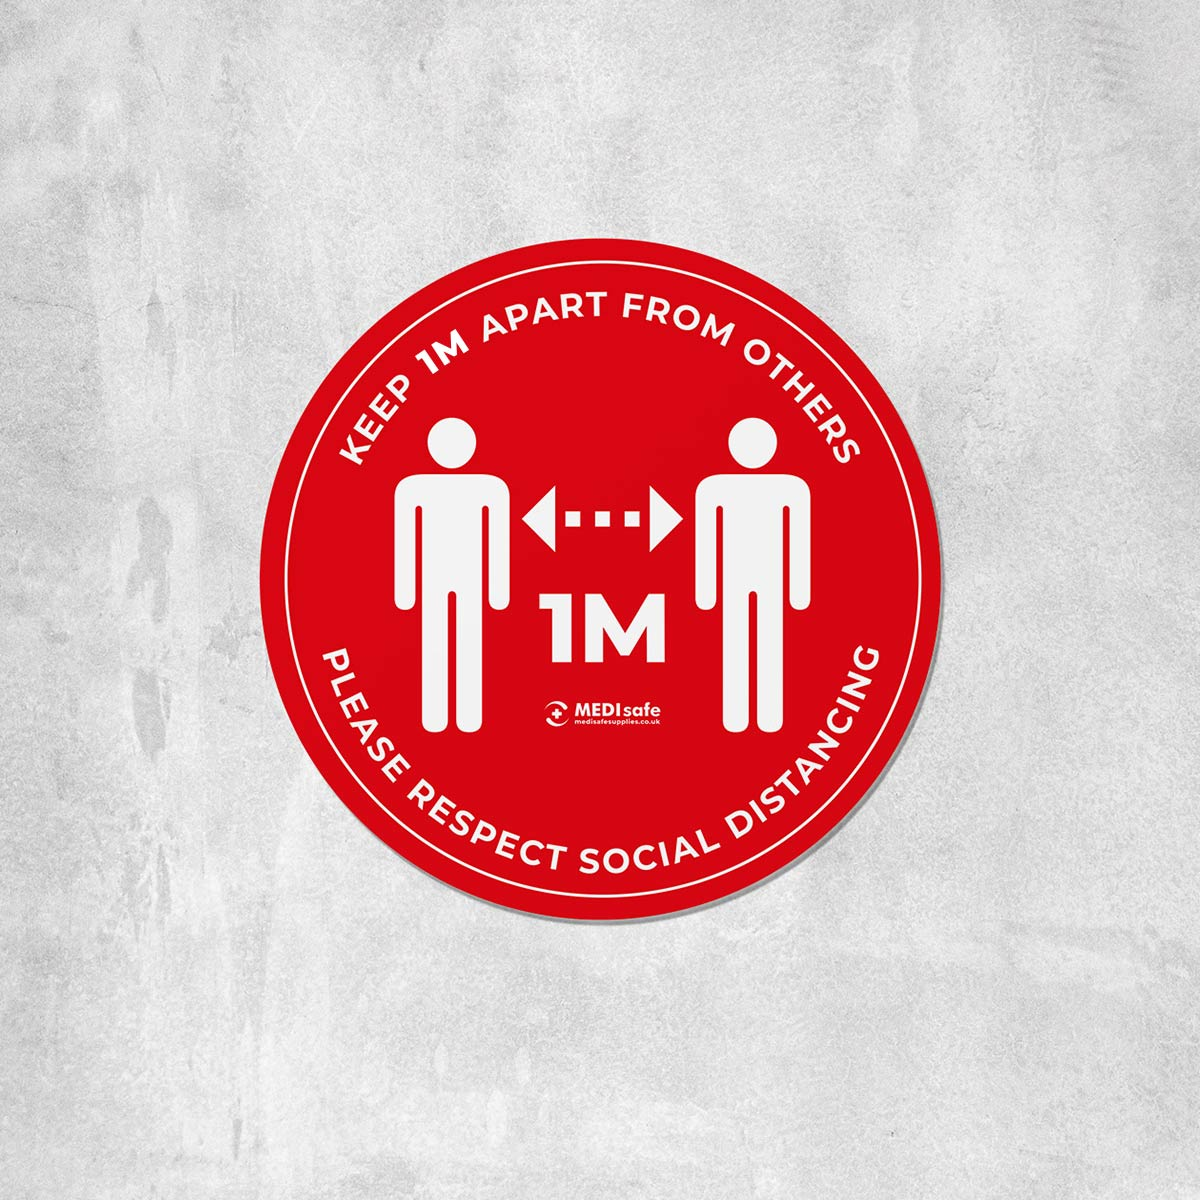 keep 1m apart social distancing floor stickers red